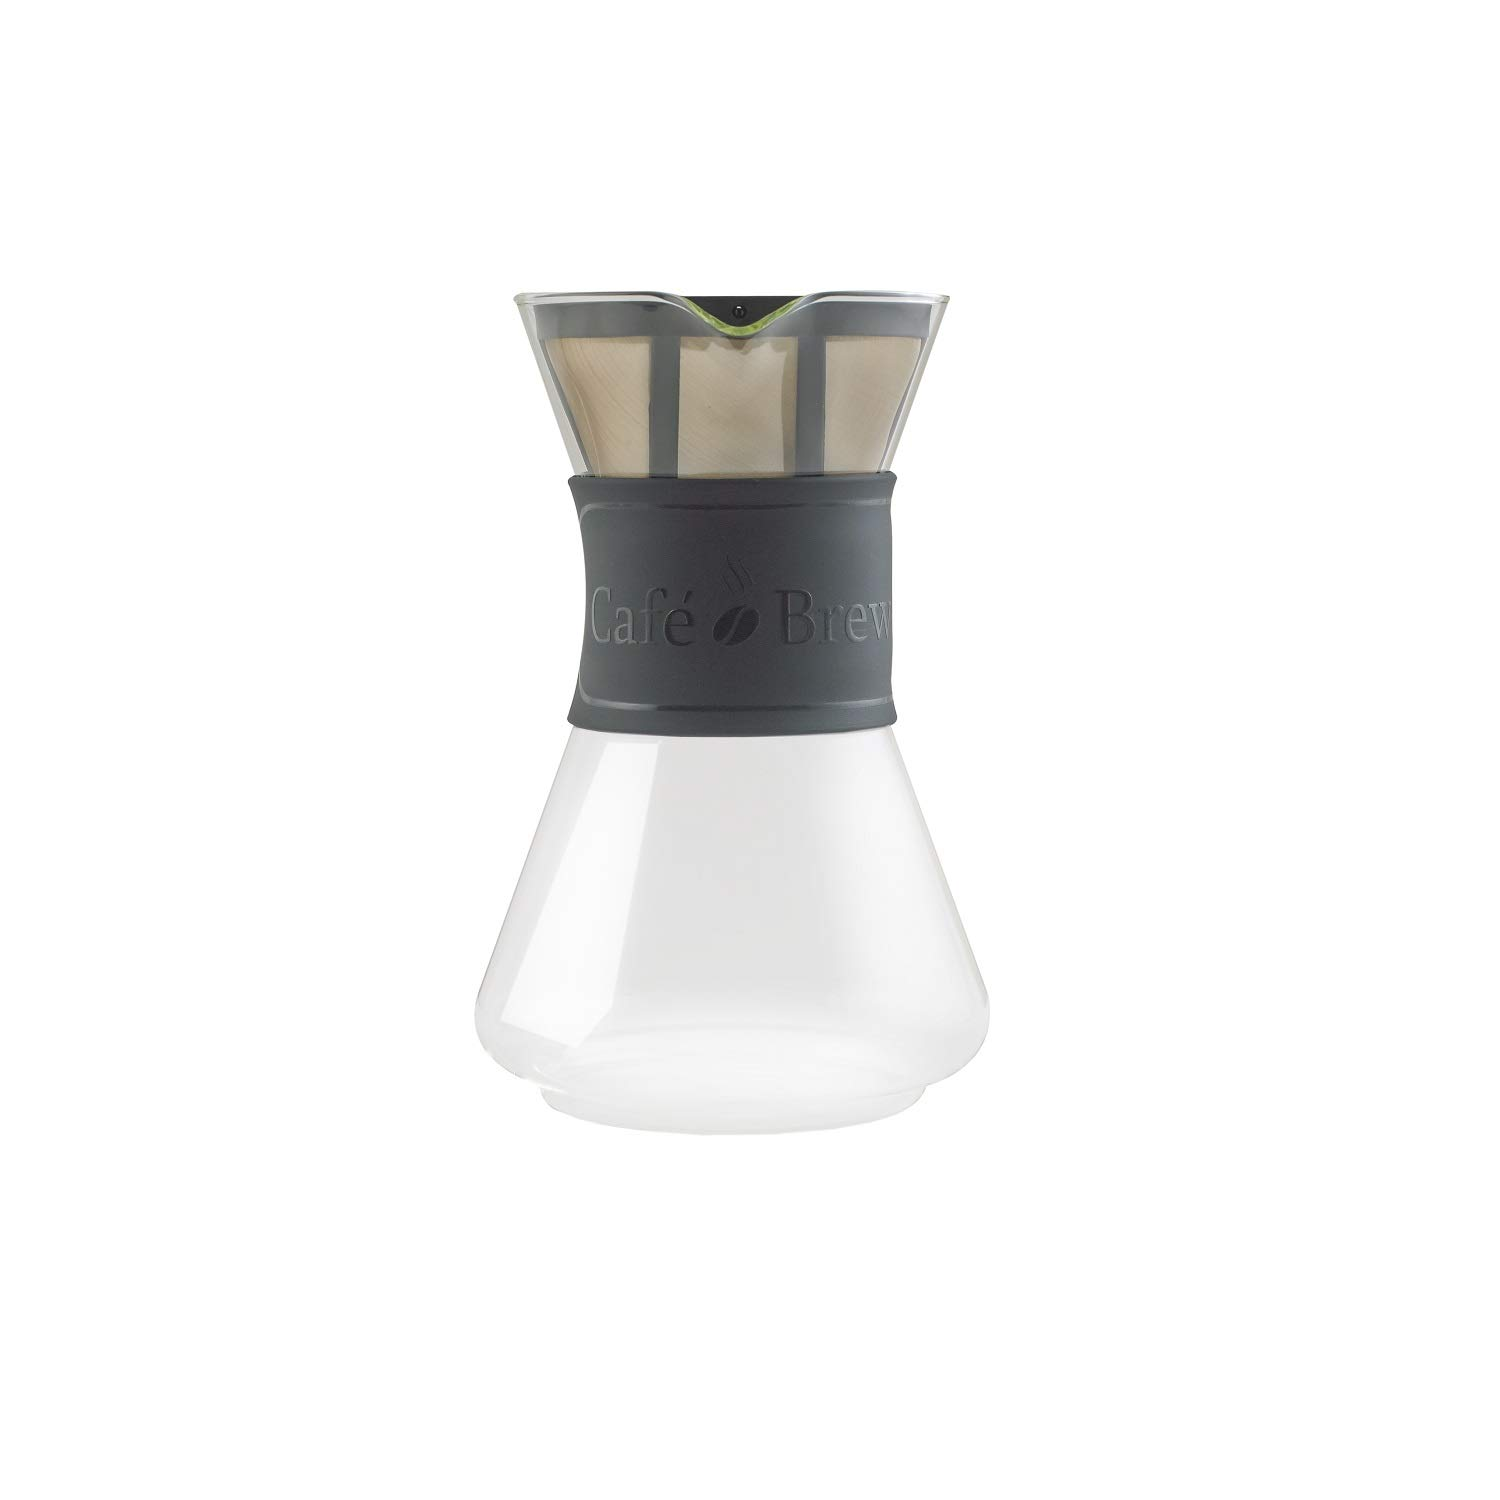 Cafe Brew PO108 BLACK 8 Cup Pour-Over Coffeemaker with Permanent Filter, 40 oz, Black by CAFÉ BREW COLLECTION